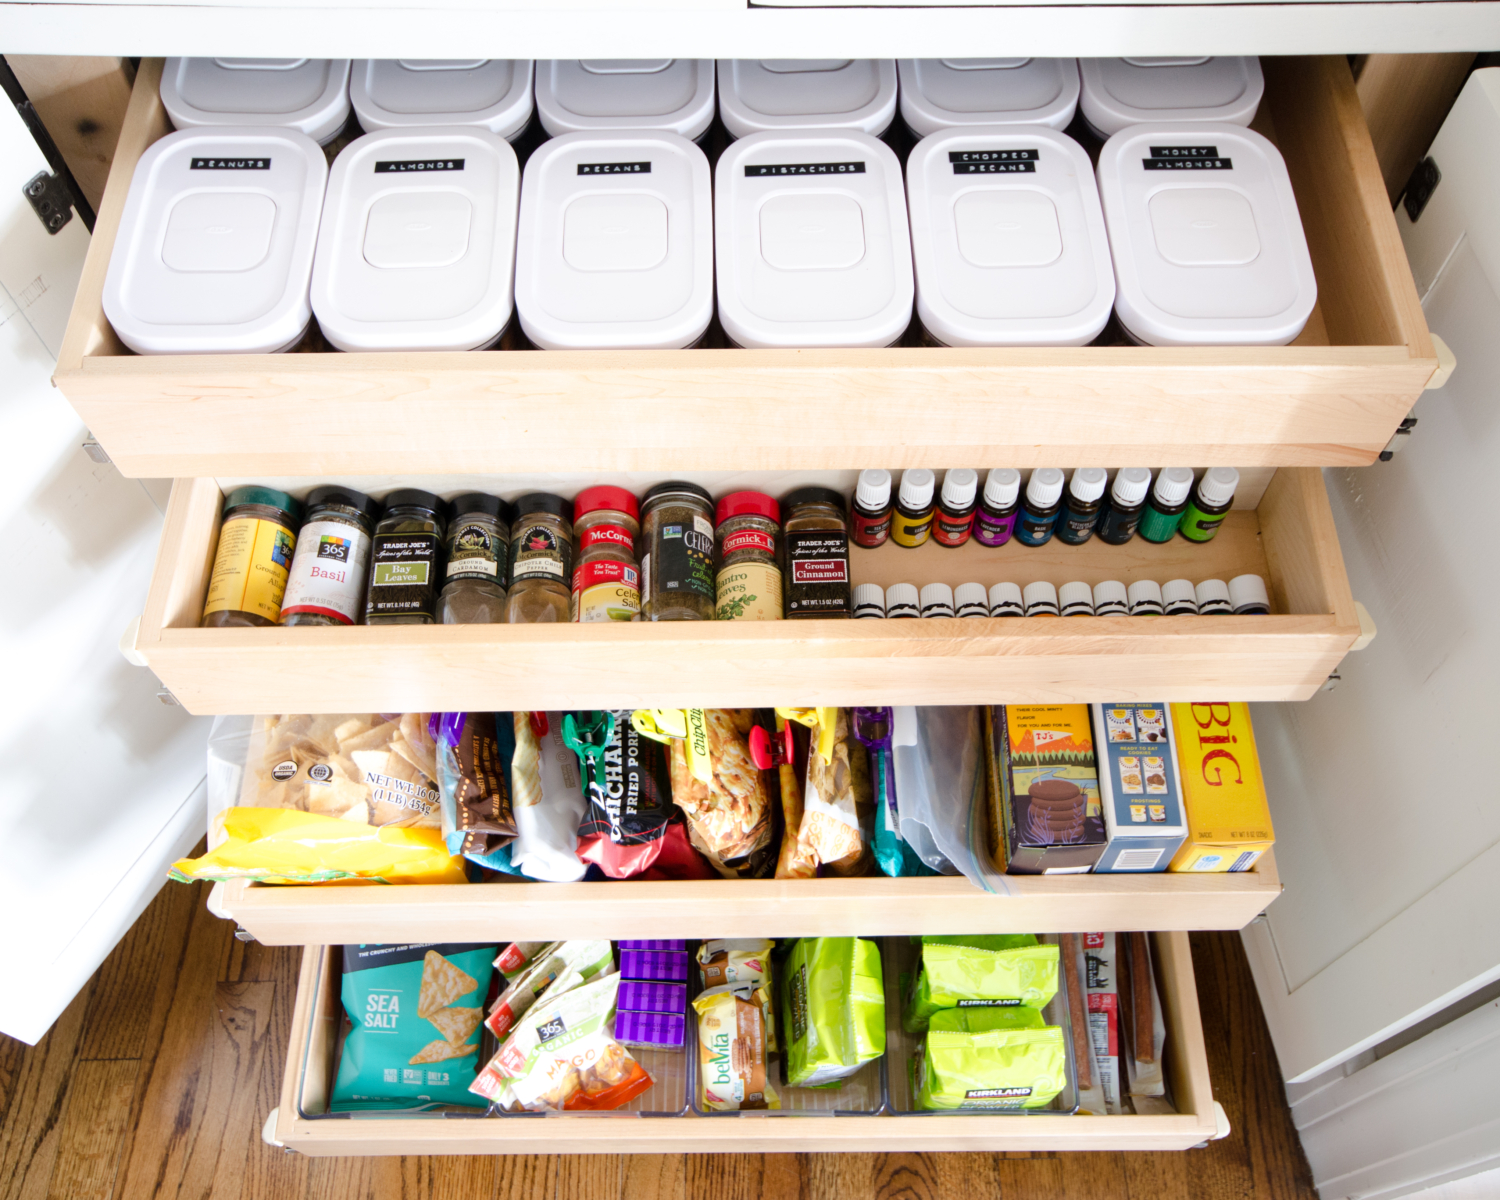 Affordable and easy kitchen organization ideas including how to organize snacks.